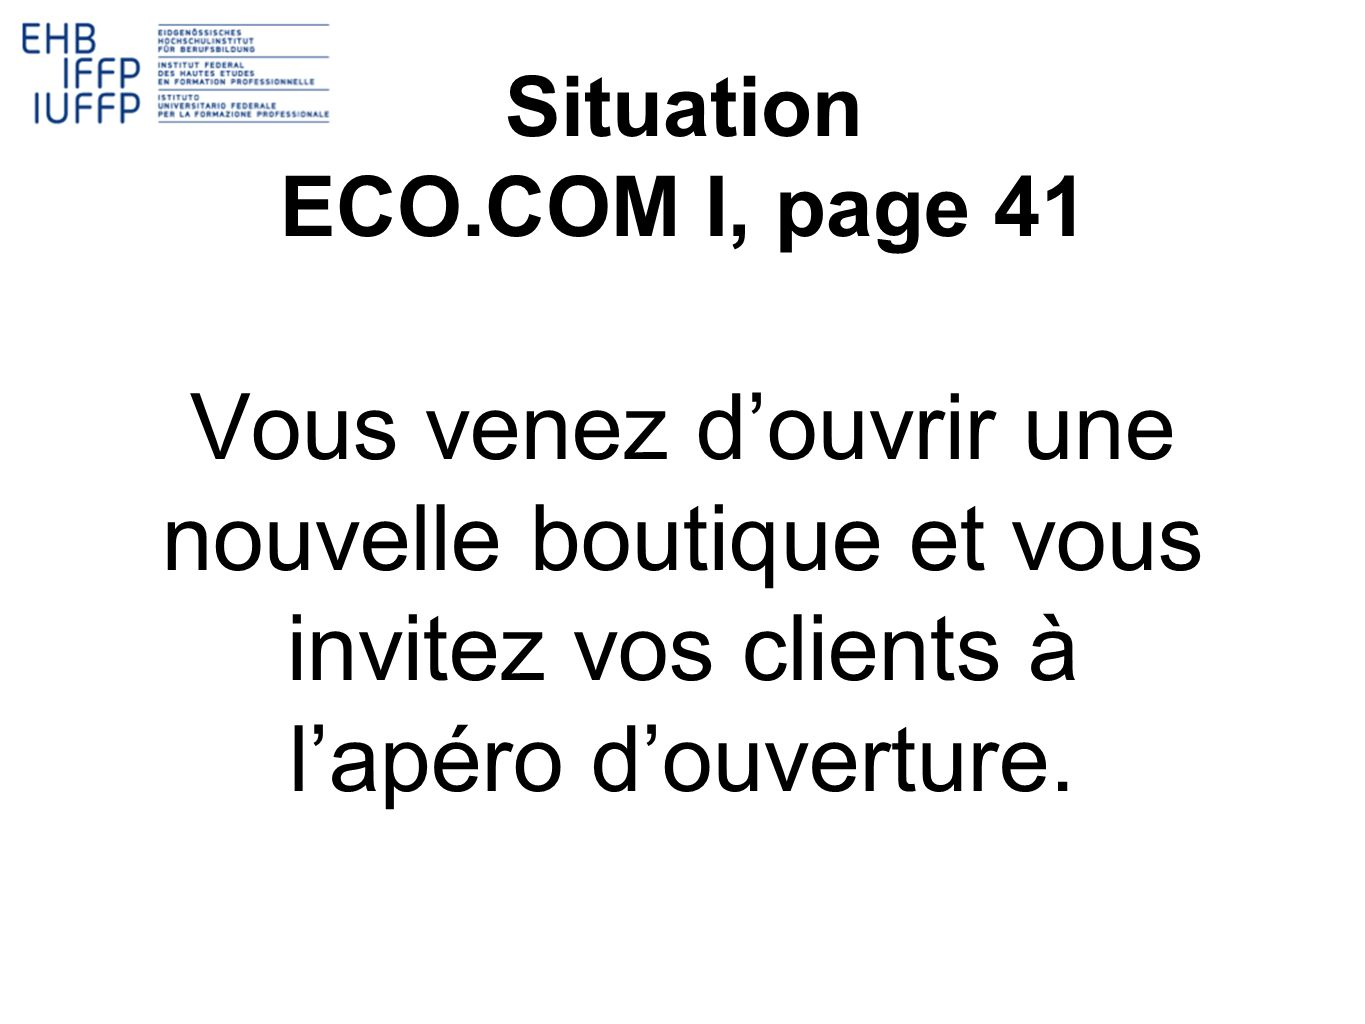 Situation ECO.COM I, page 41.